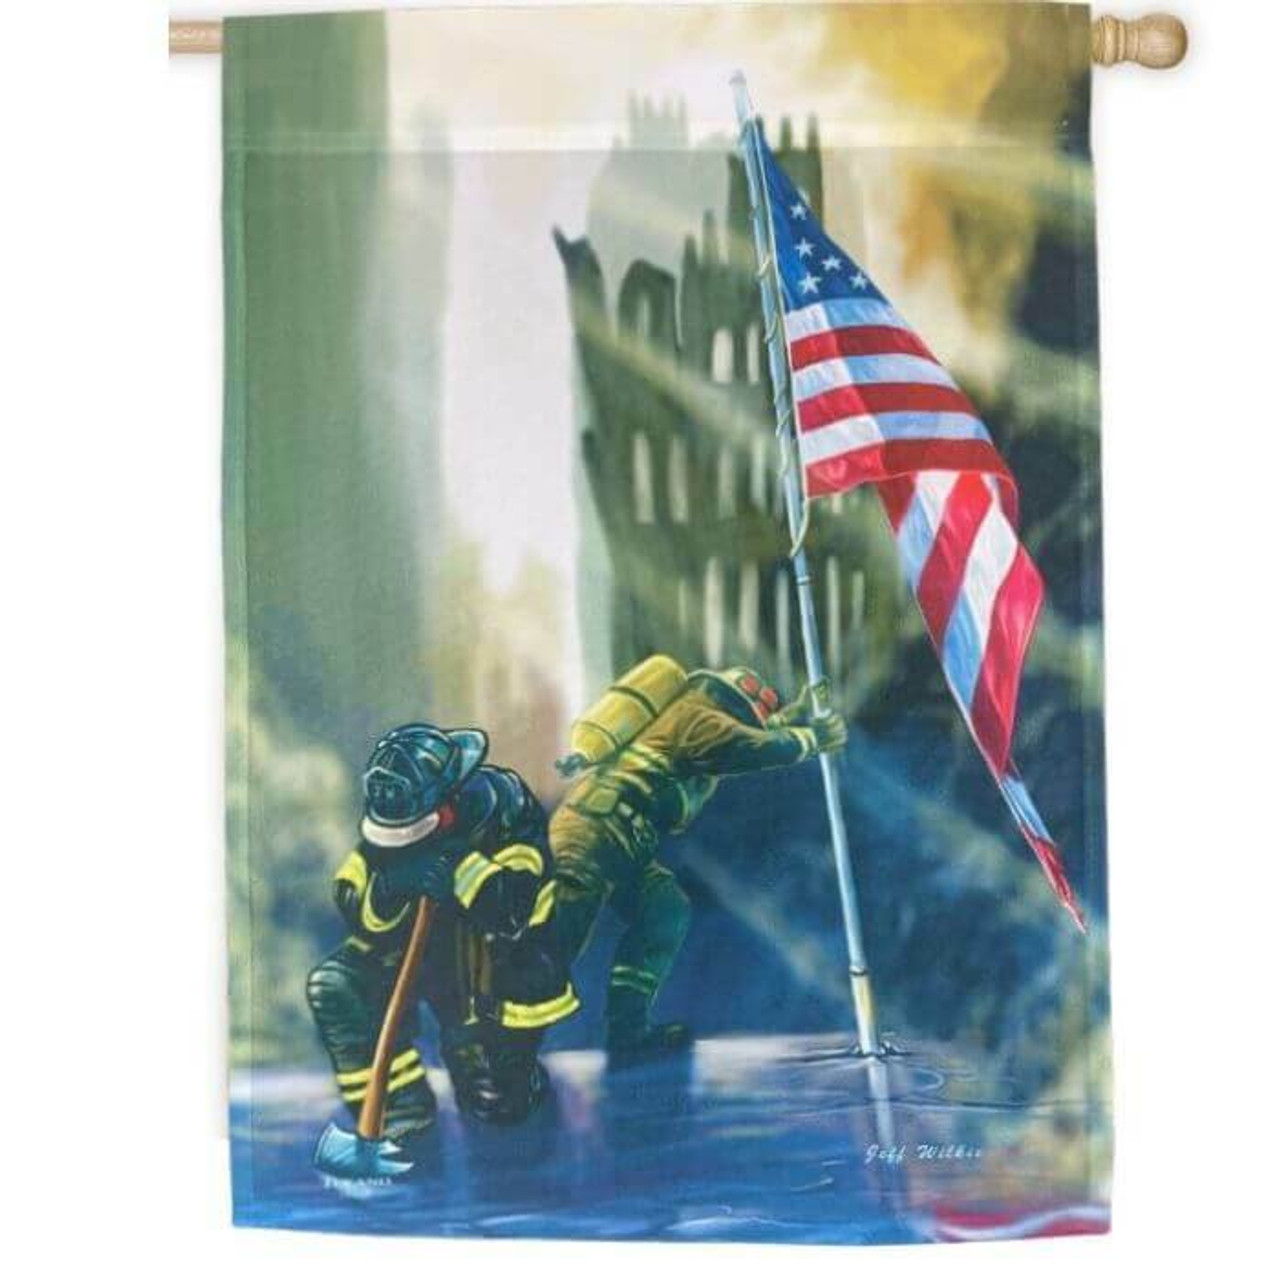 American Heroes House Flag with first responders and American Flag